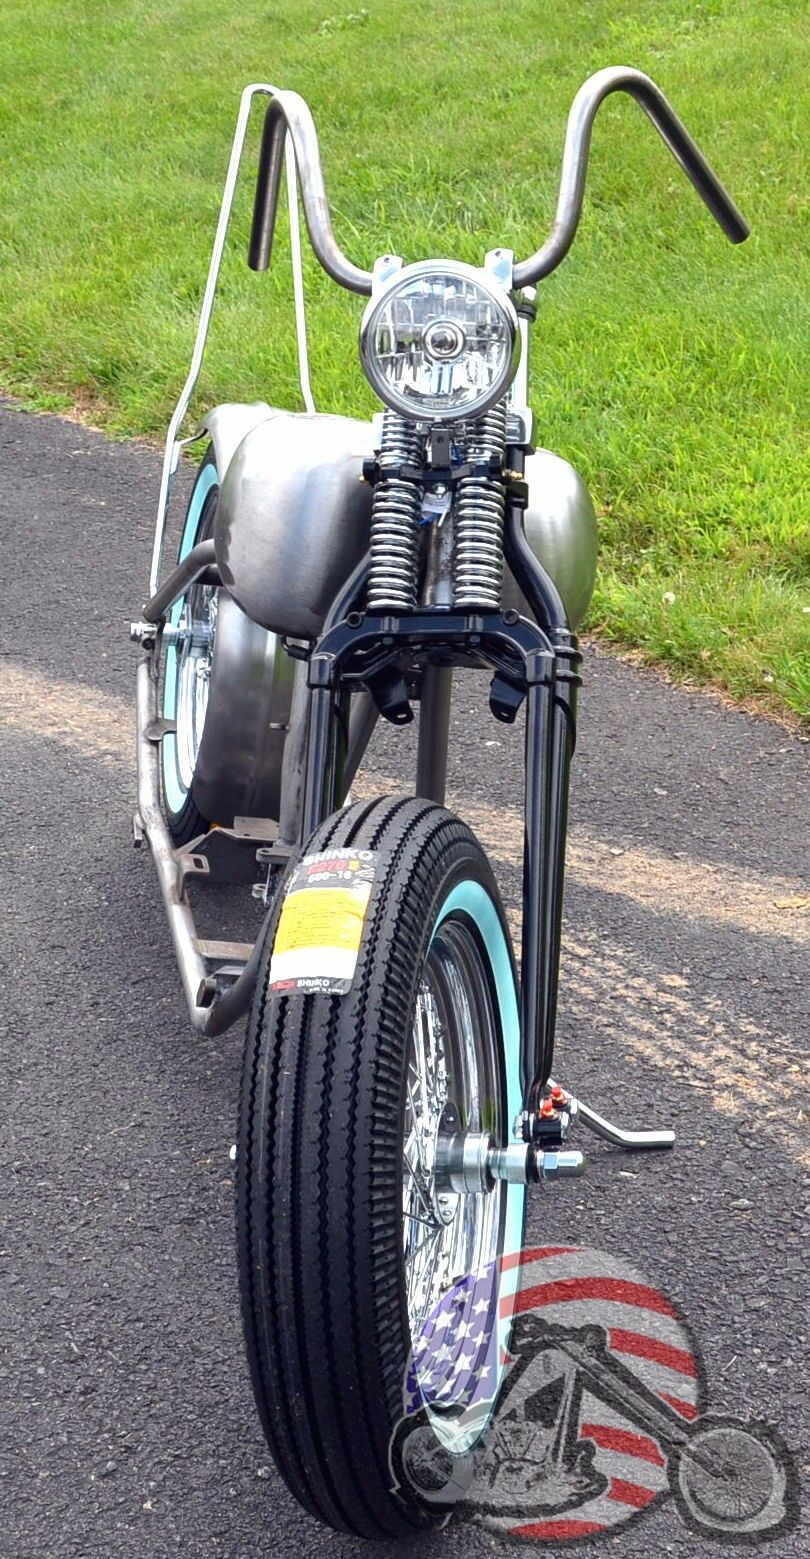 bobber rolling chassis with engine | Kayamotor co